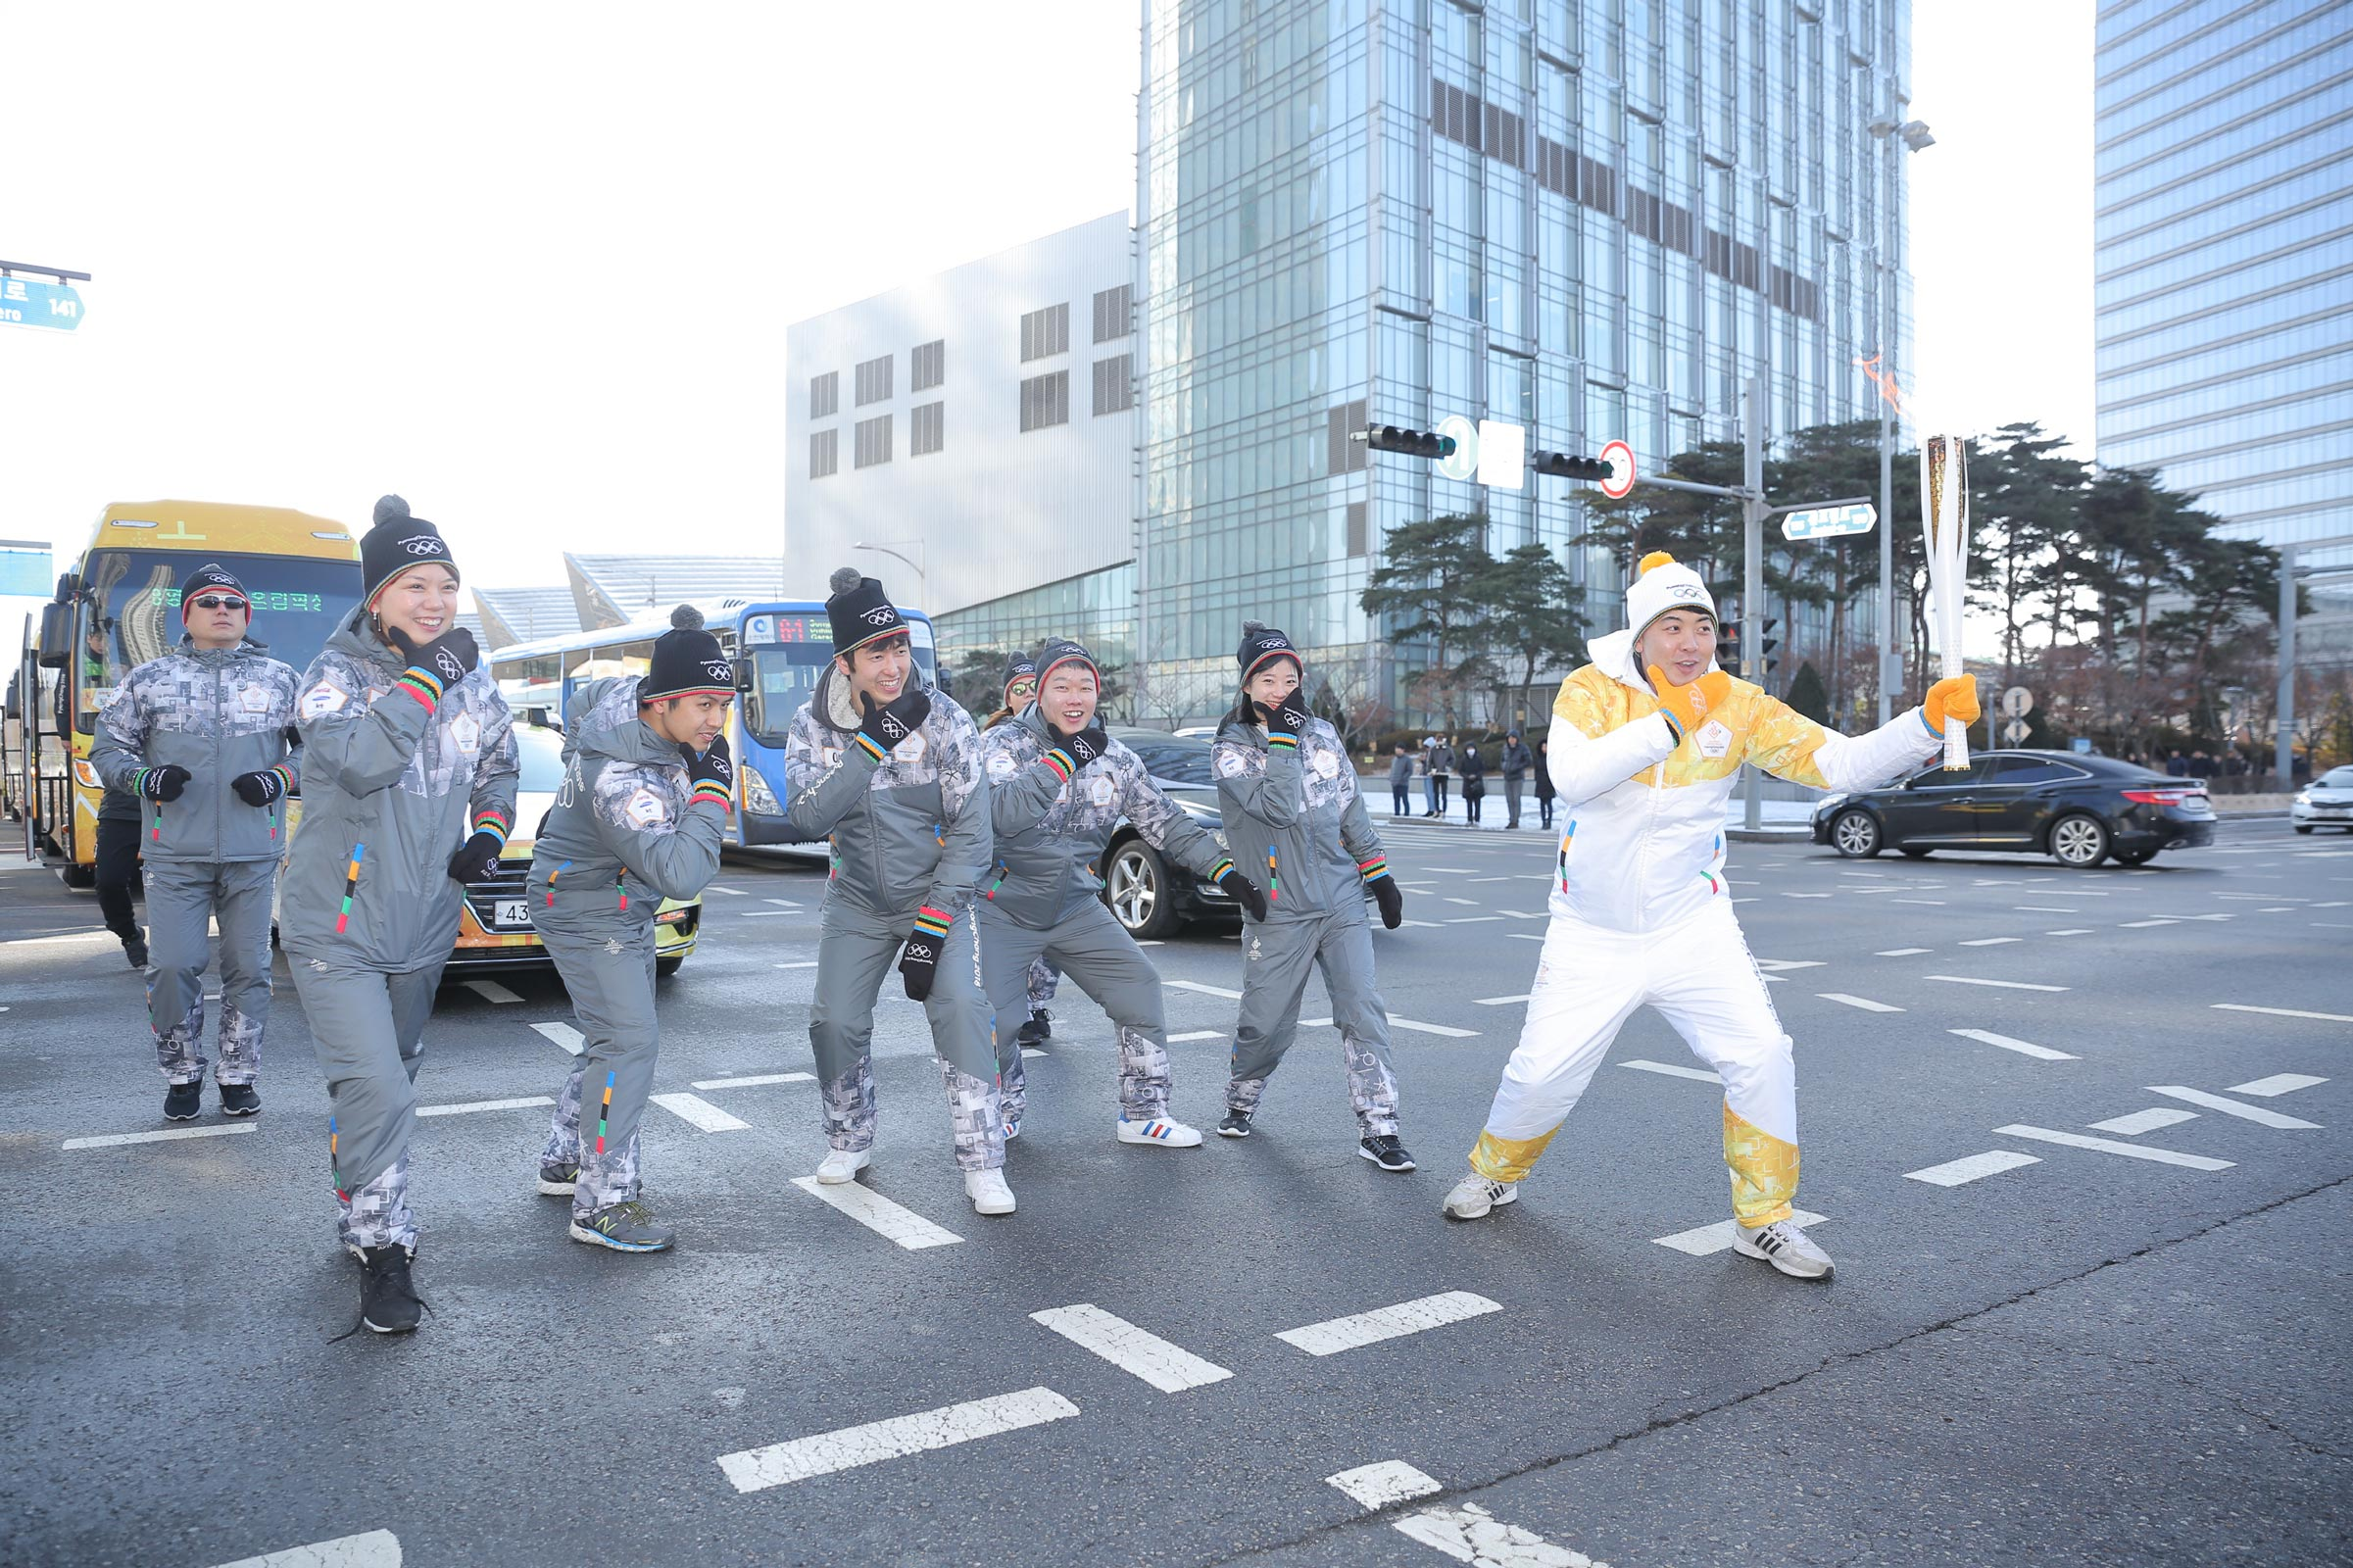 PyeongChang 2018 Olympic Torch Relay - Day 71